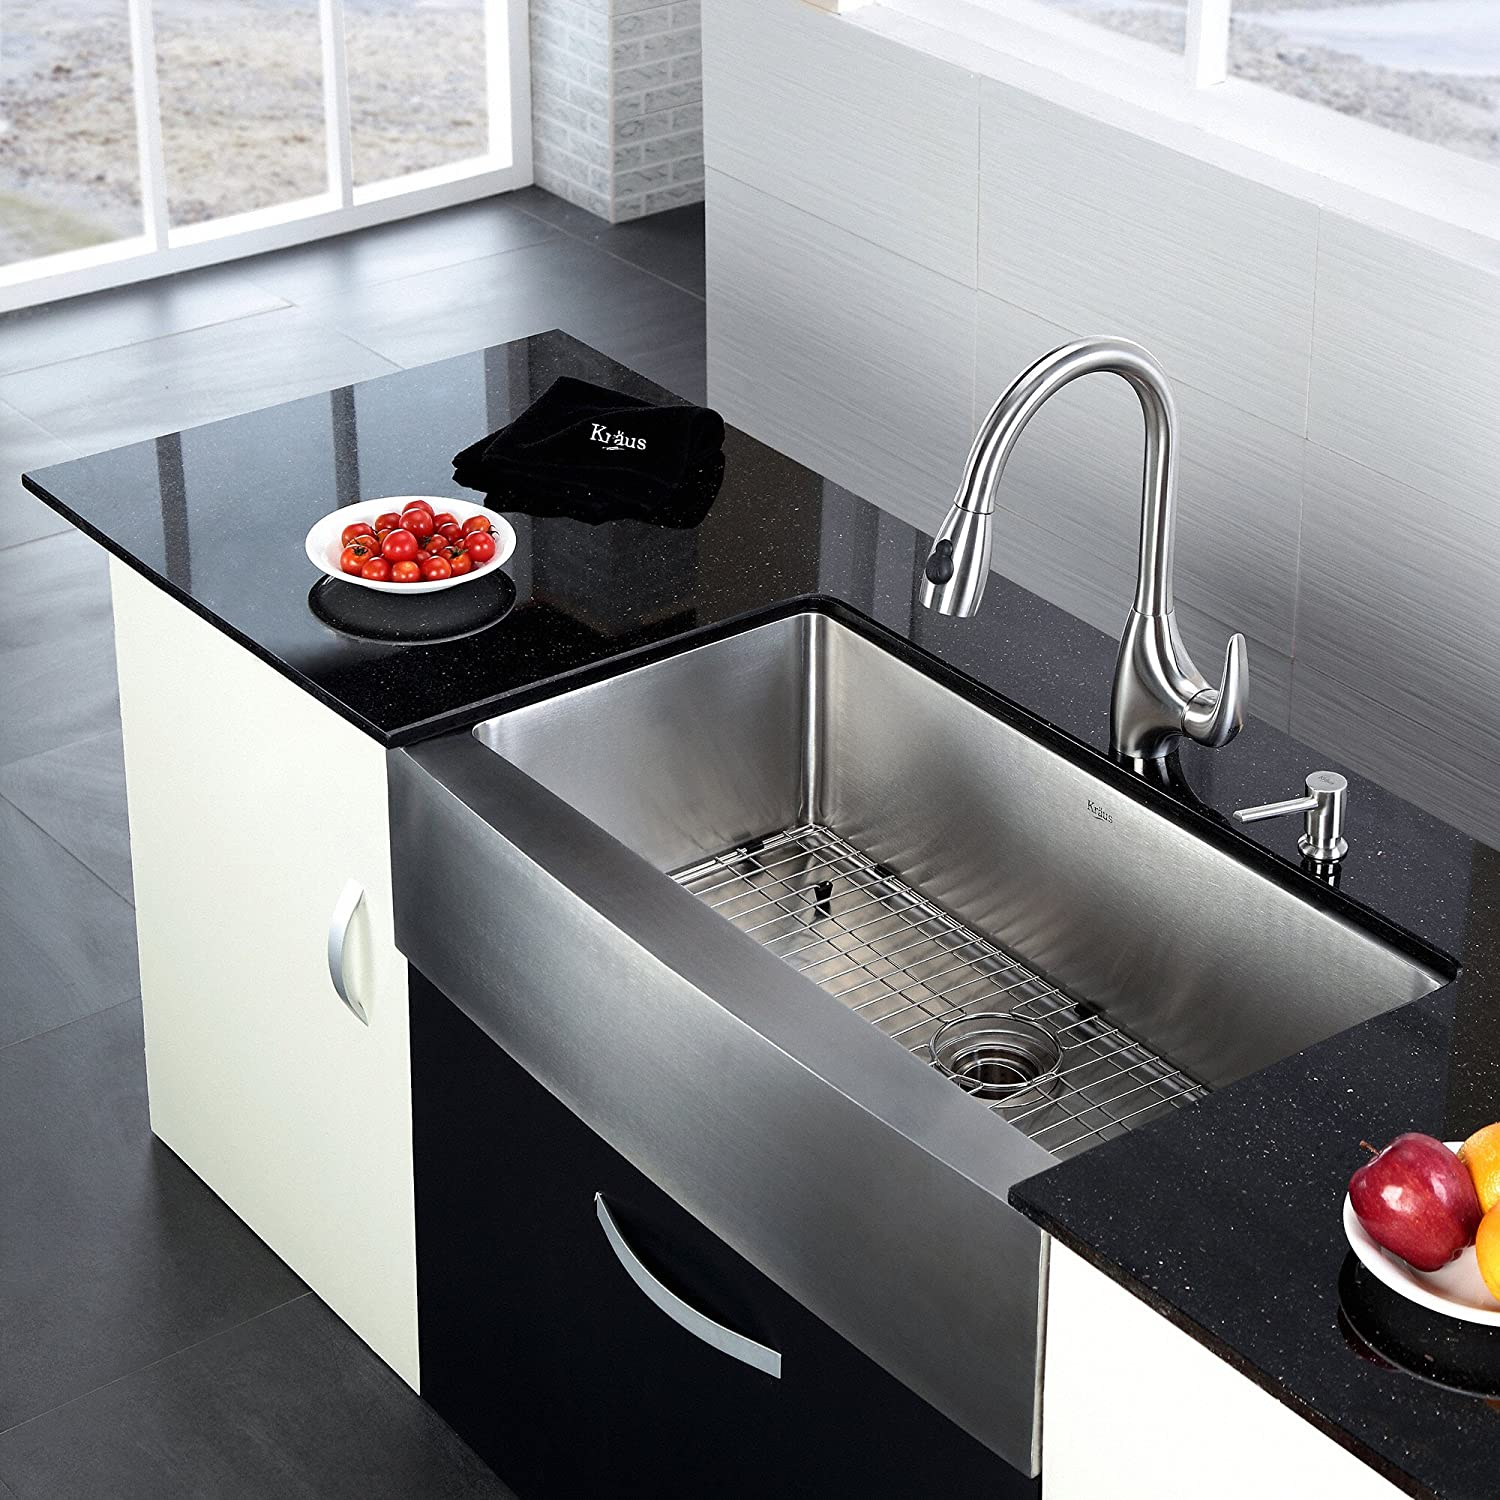 Best Stainless Steel Sinks 2019 (list of sinks that doesn\'t ...